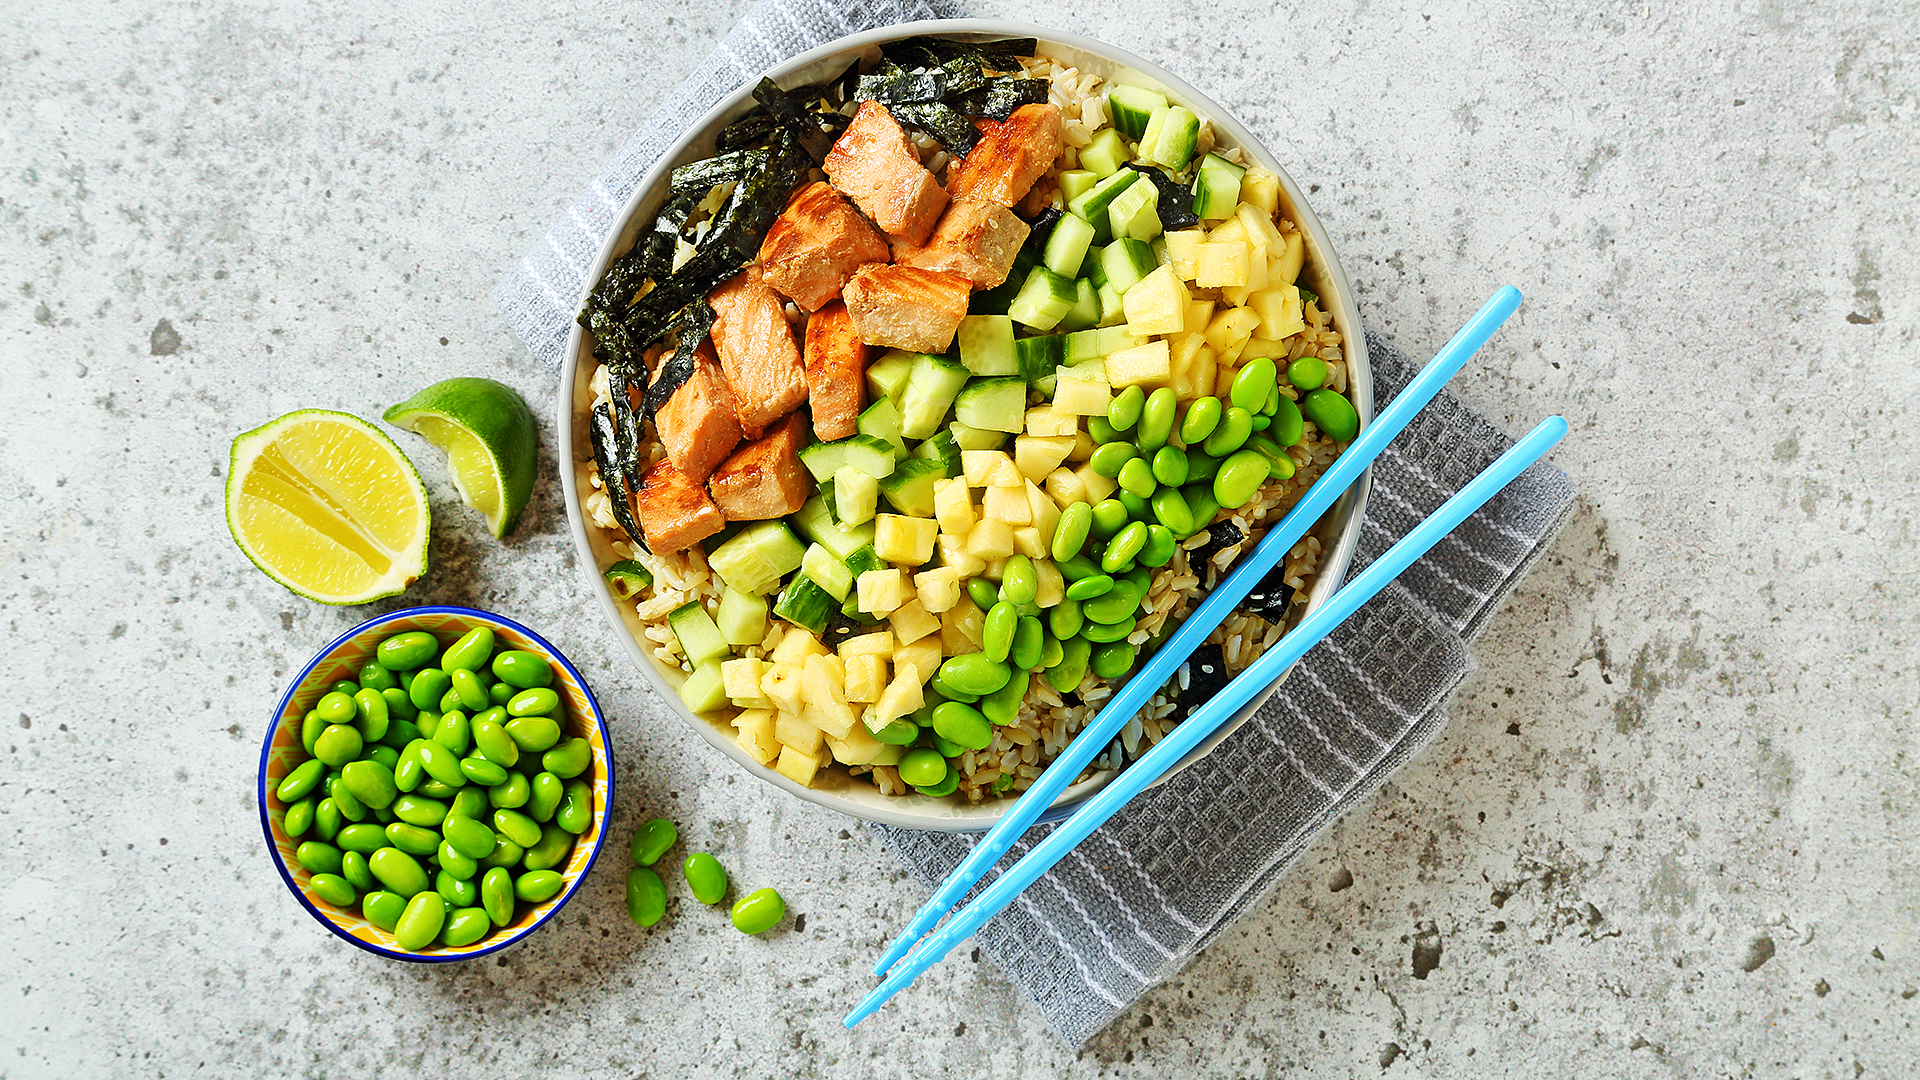 Salmon poke style salad in a bowl with blue chopsticks and edamame and lime on the side